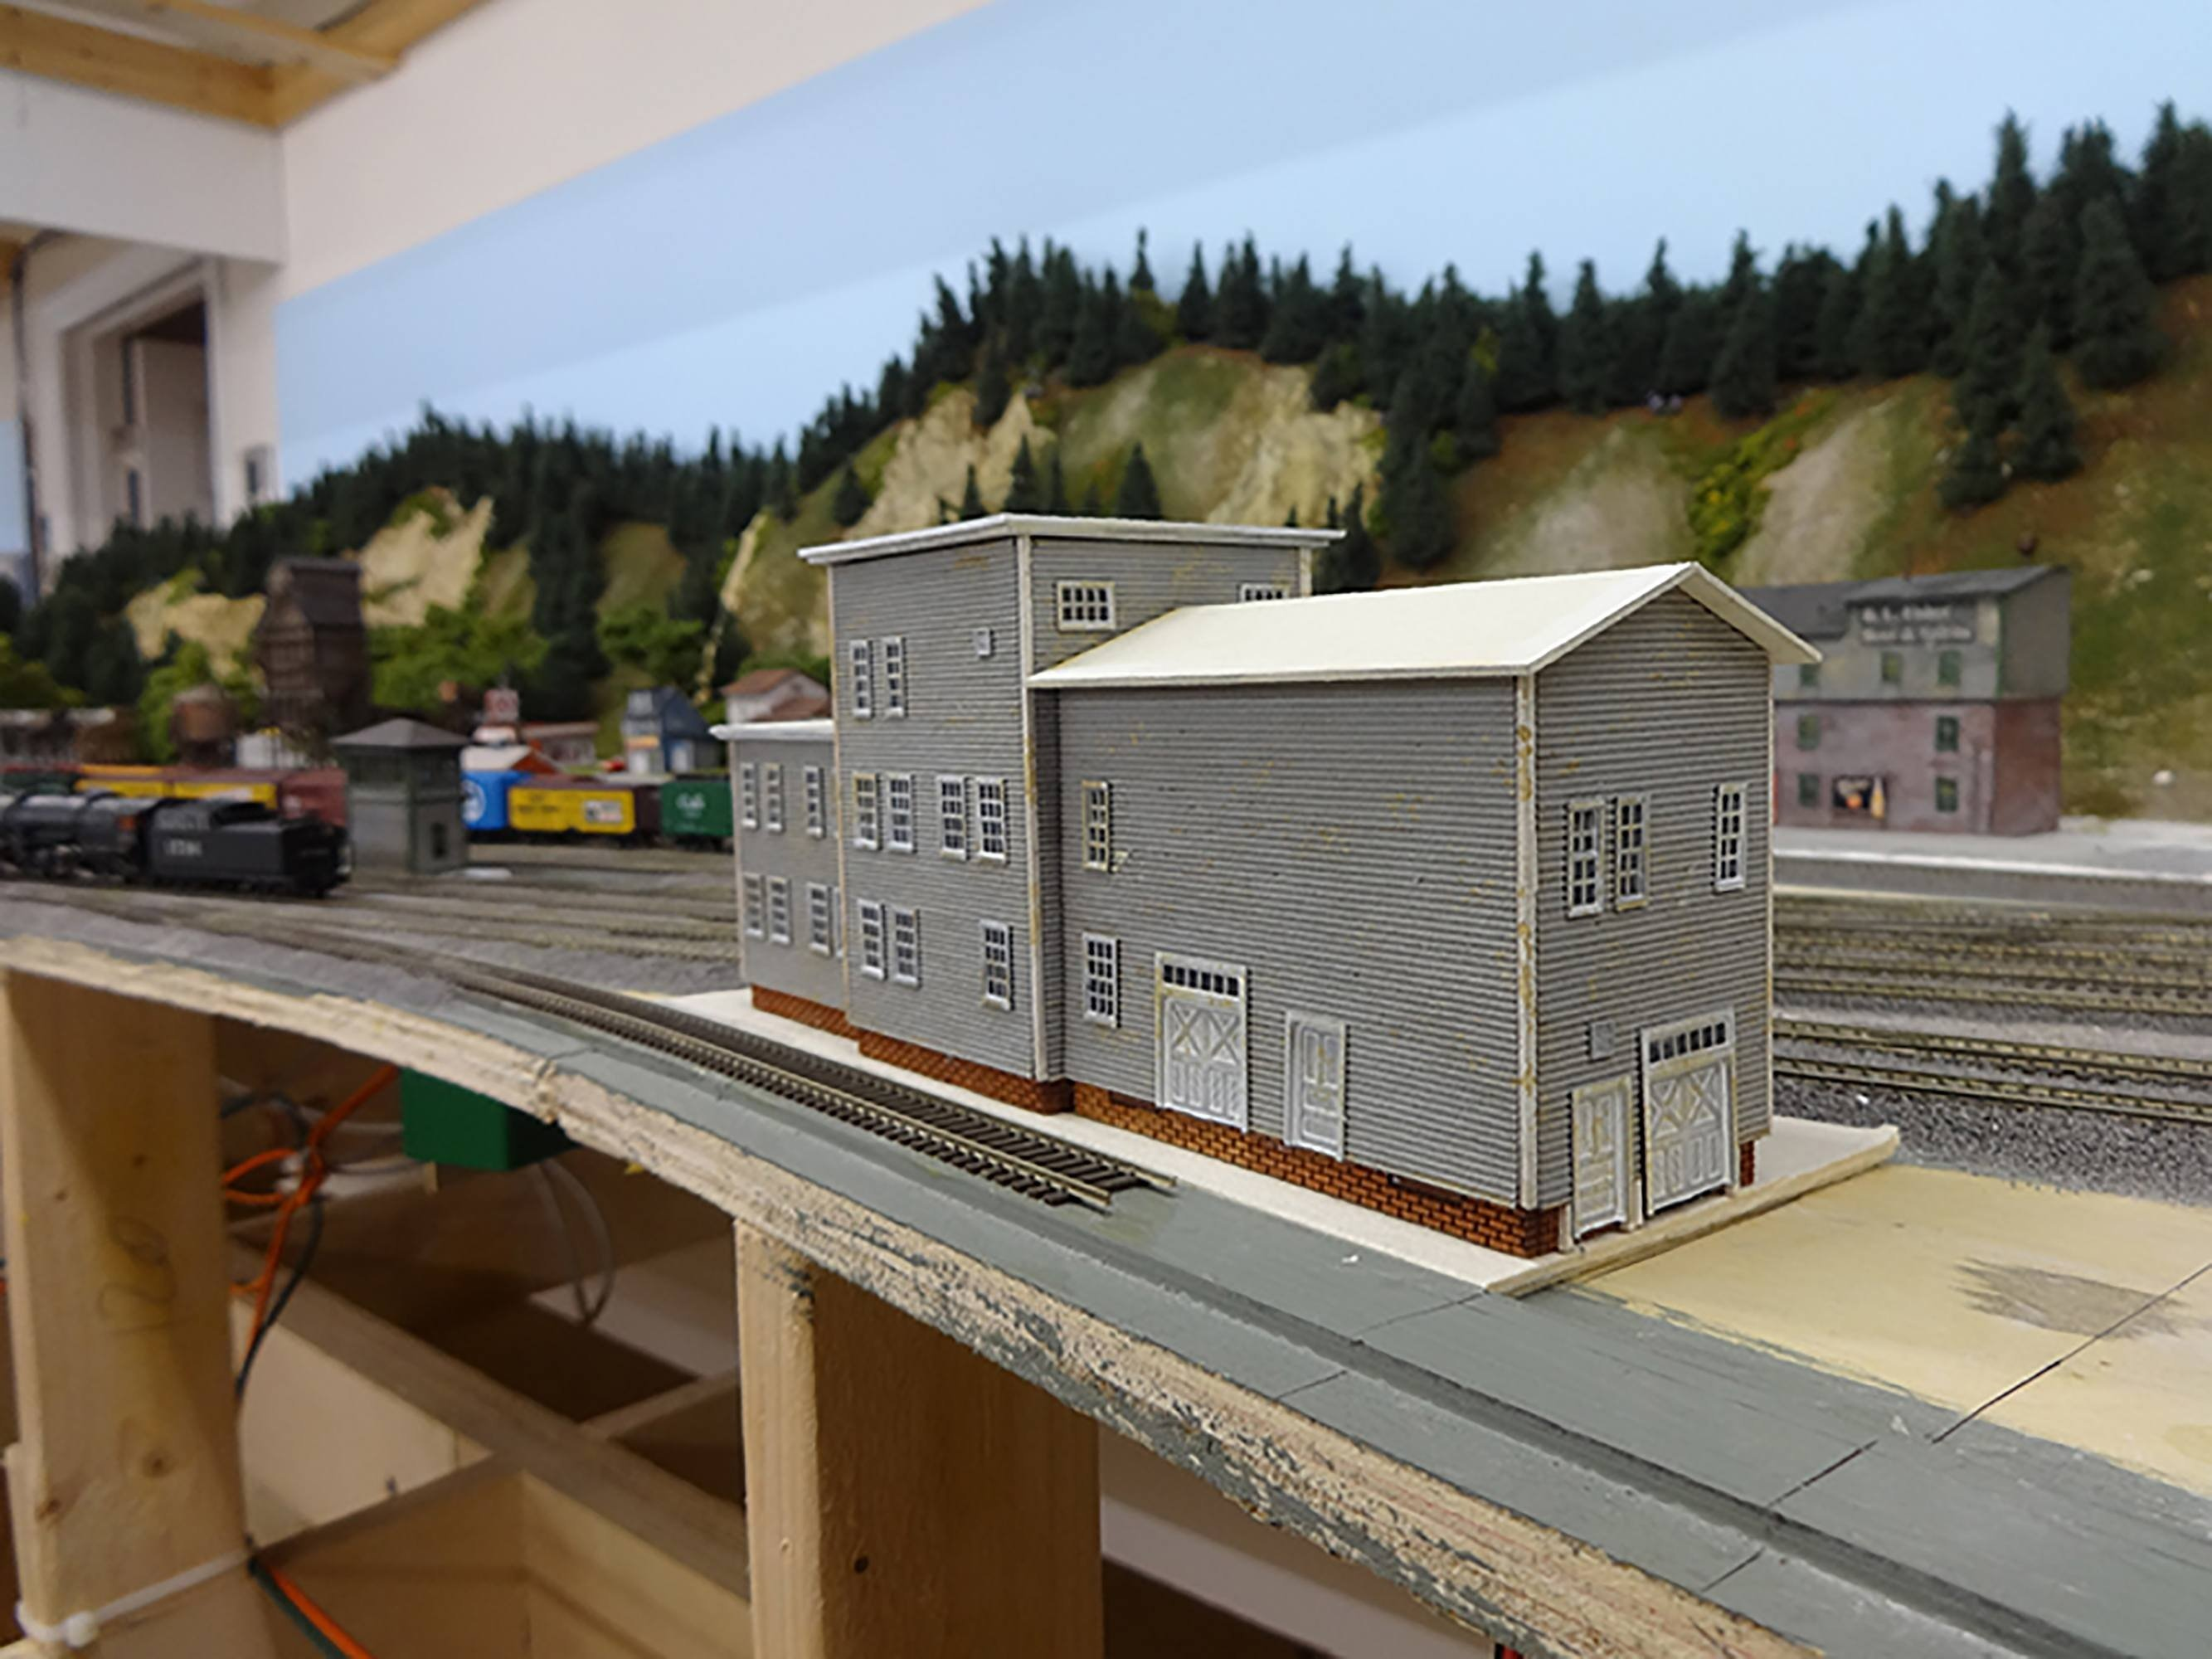 Scale railroad model gray building